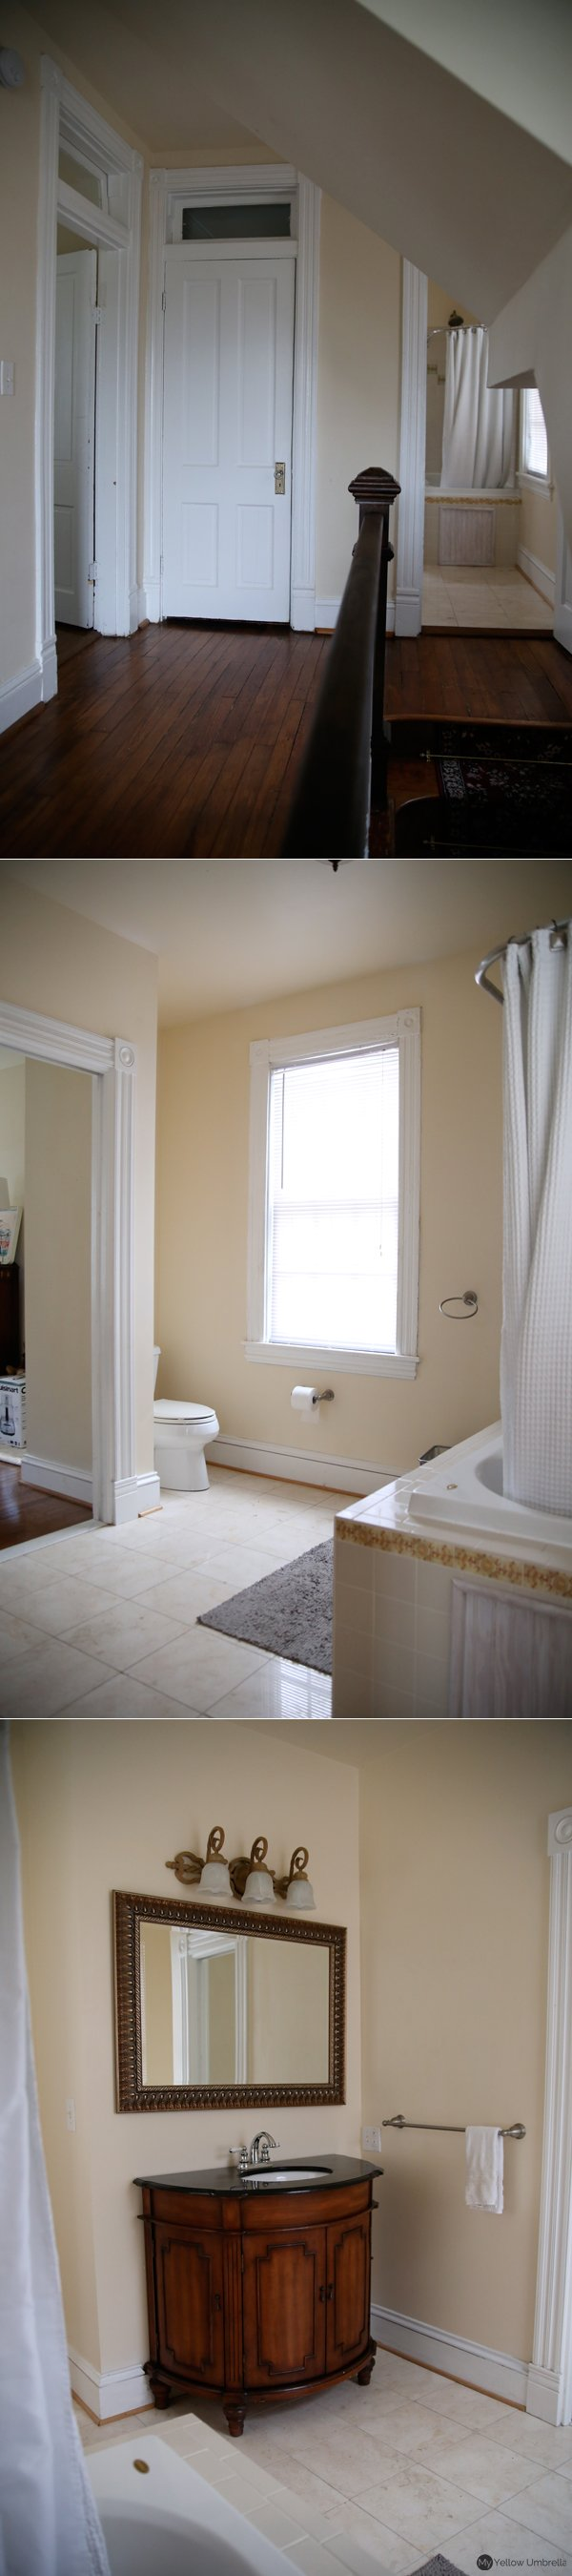 House Tour - Upstairs Bath